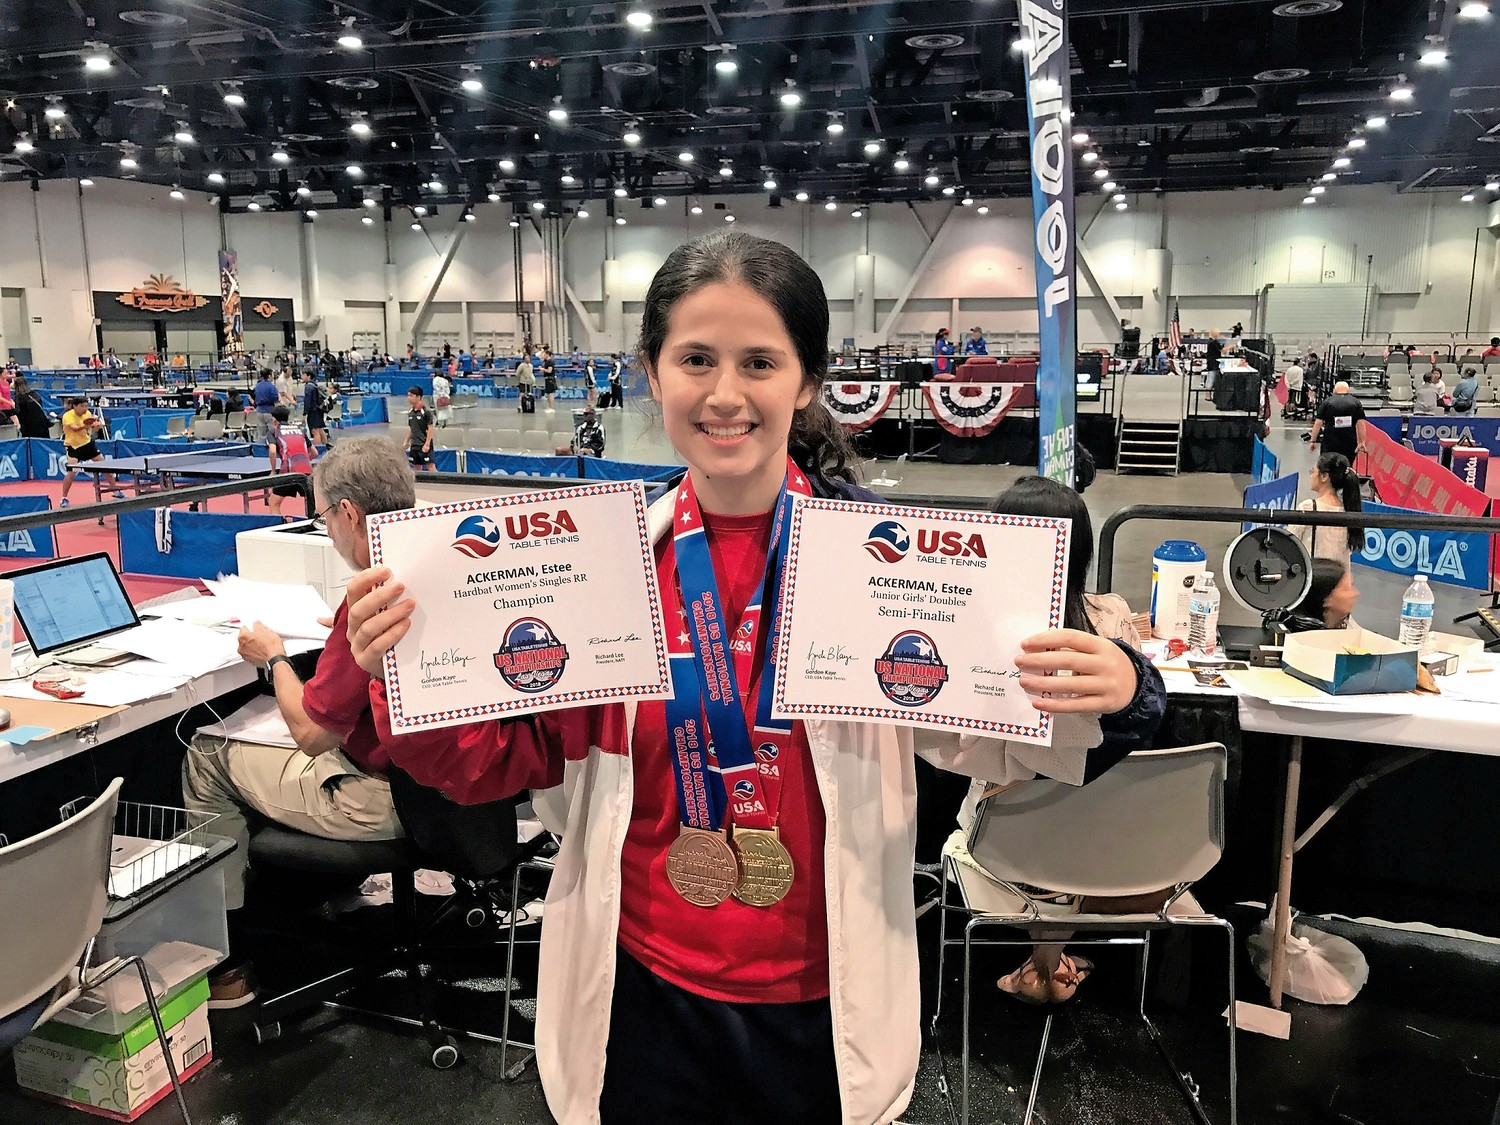 Estee Ackerman, 16, won numerous awards at this year's U.S. National Table Tennis Championships in Las Vegas.